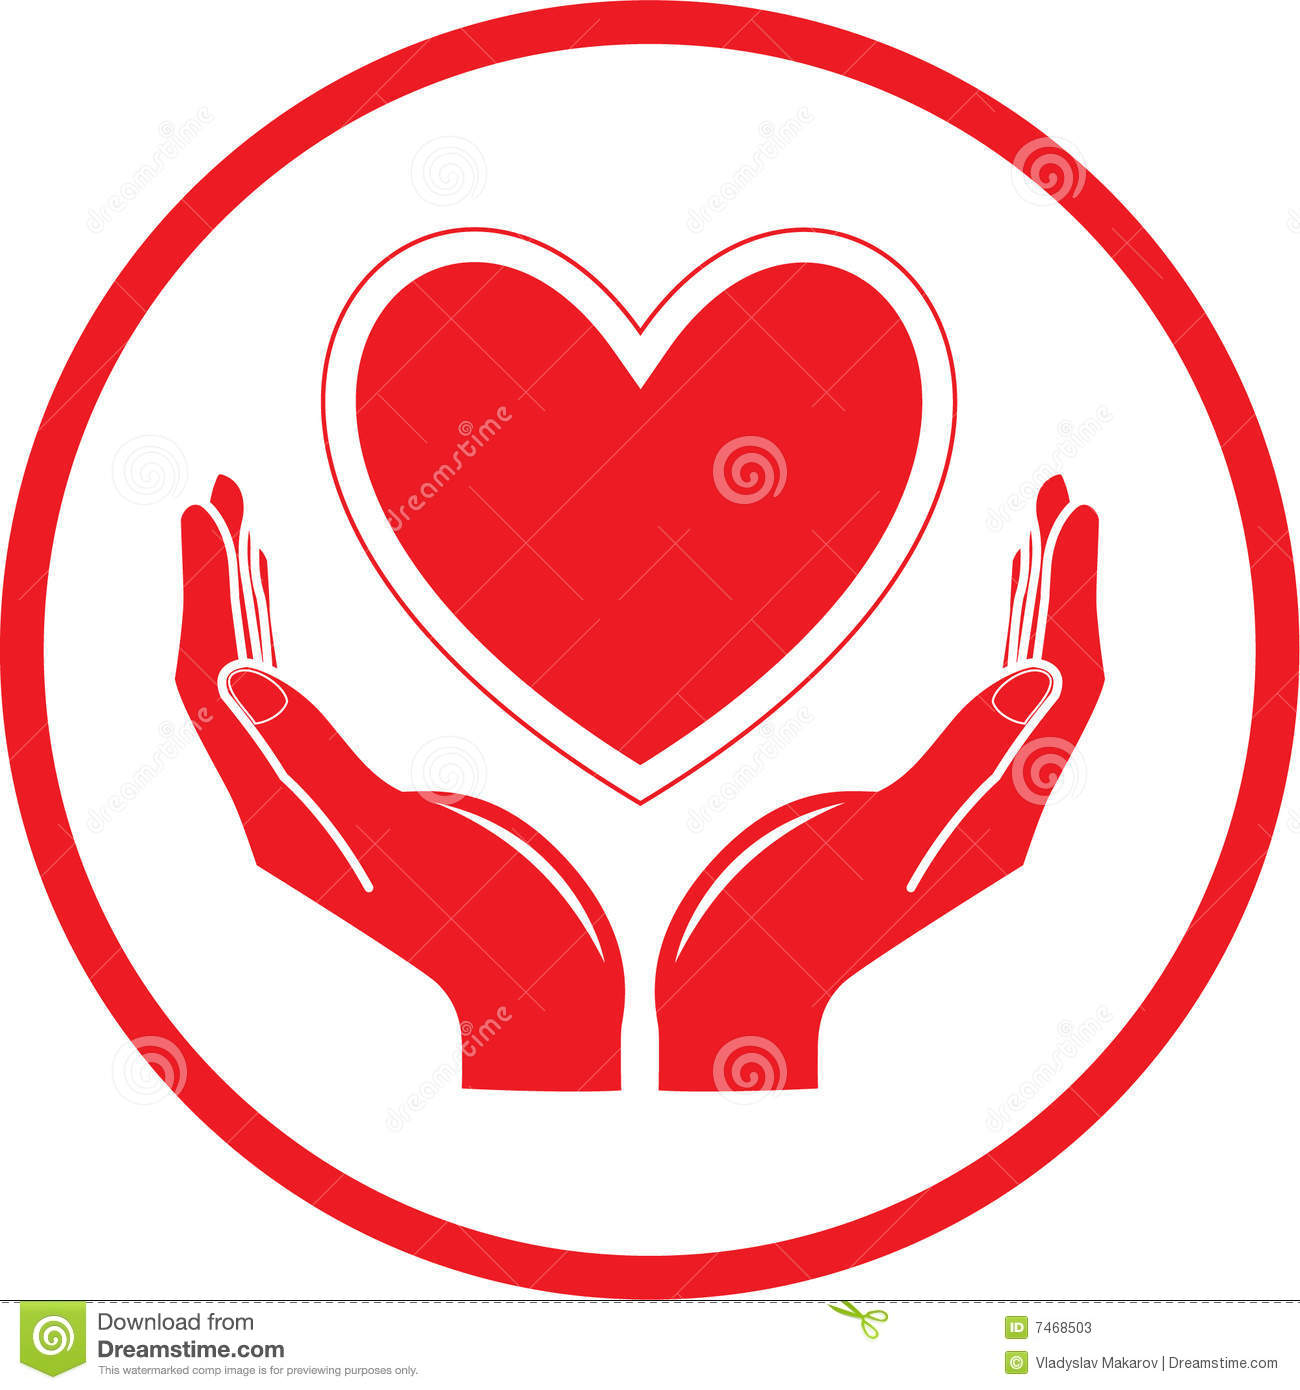 vector heart and hands icon stock photos image 7468503 Medical Sign Medical Sign